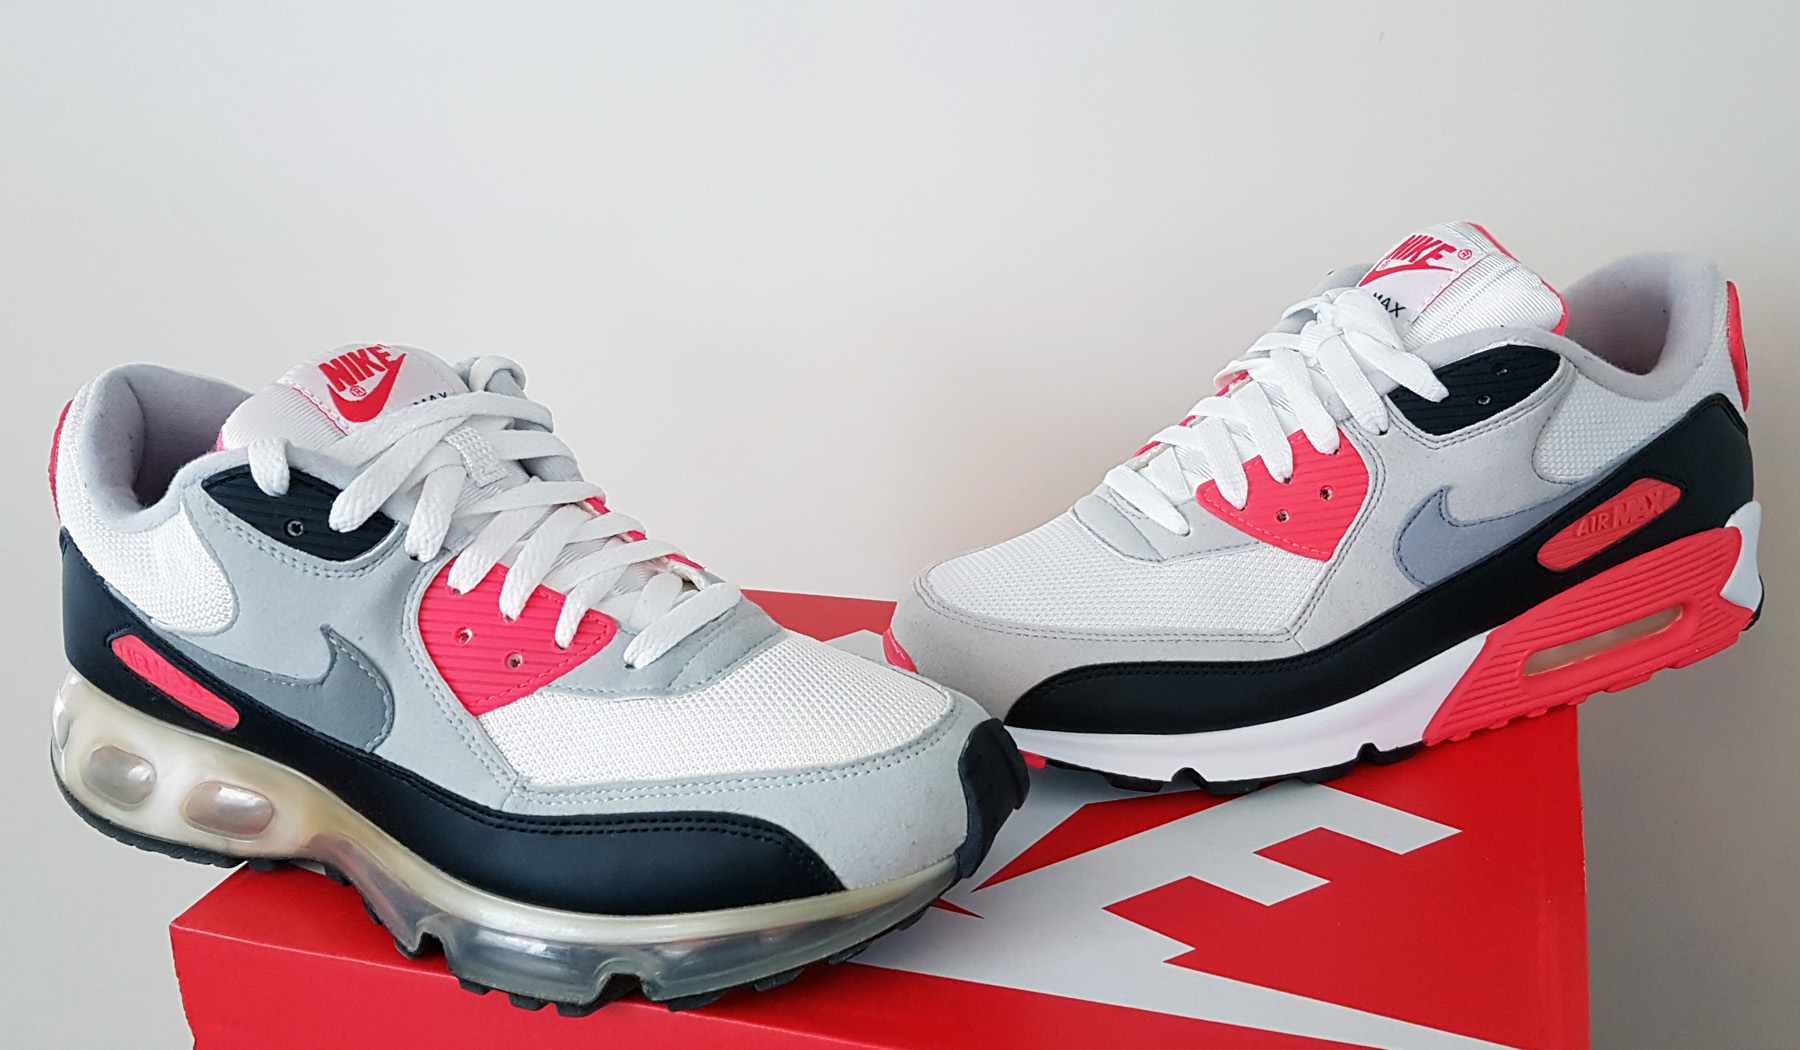 Nike Patike Nike Air Max Wikipedia